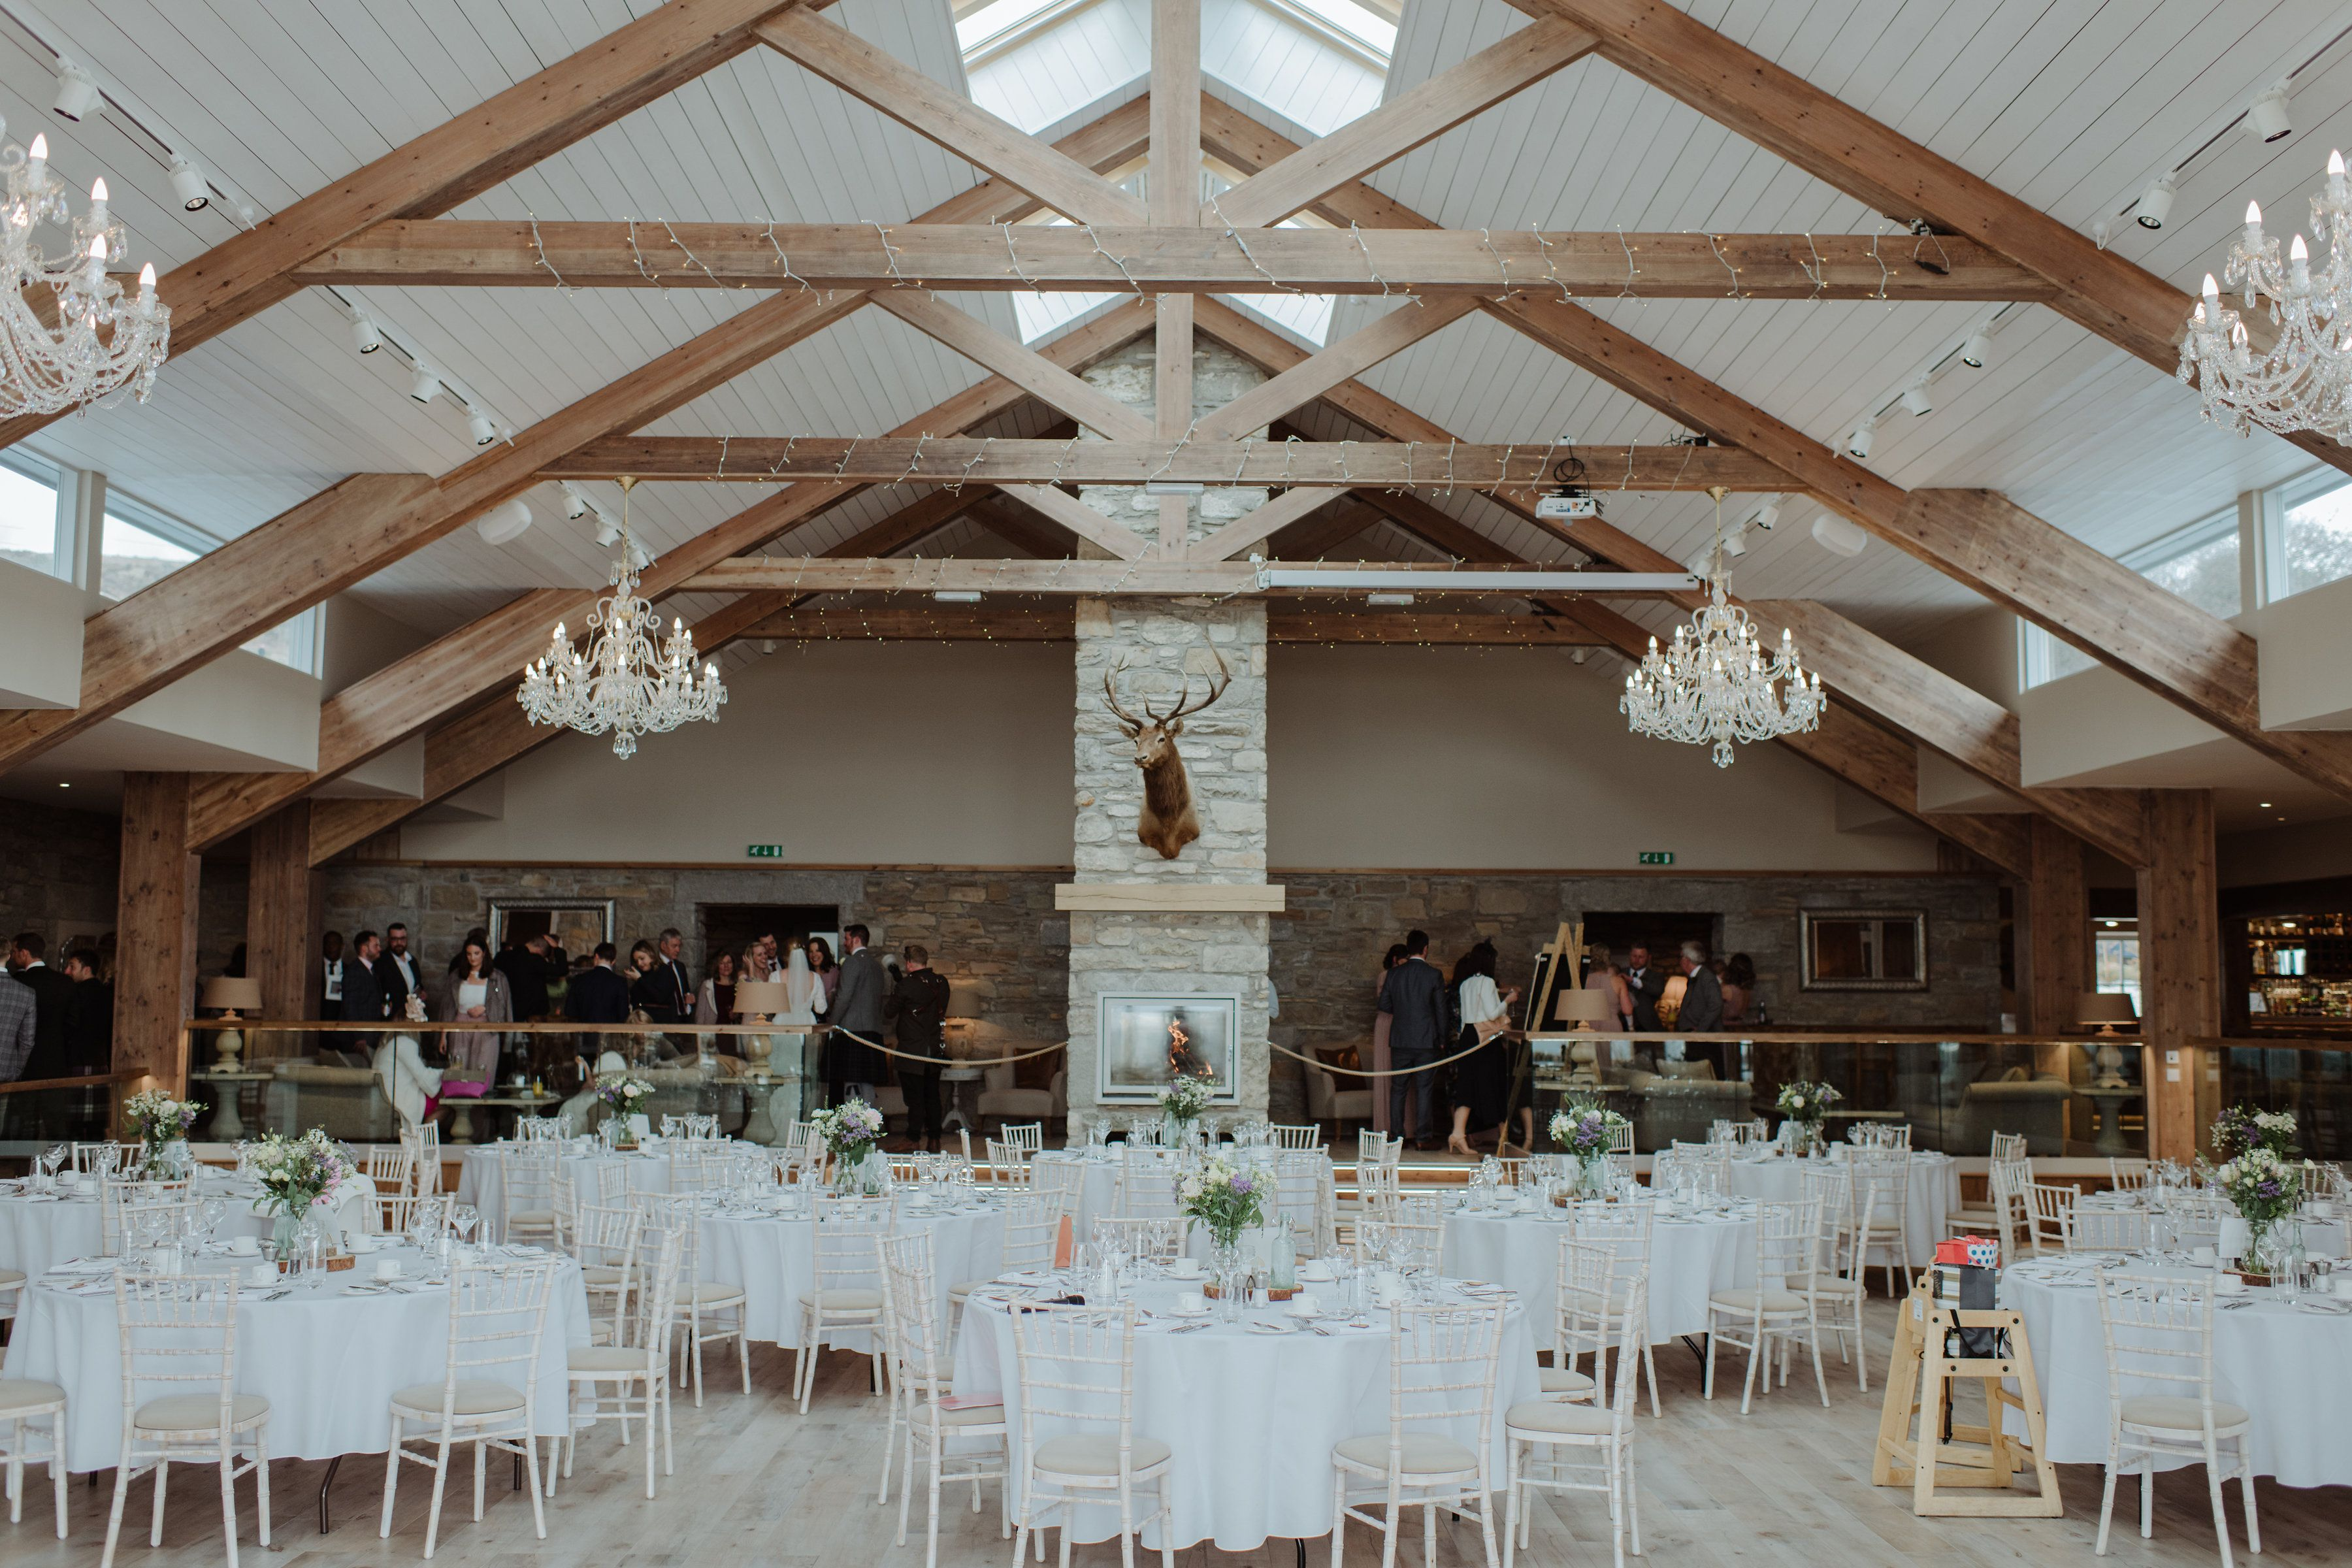 Our Grand Gallery At Gg S Yard Wedding Venue Ready To Welcome Our